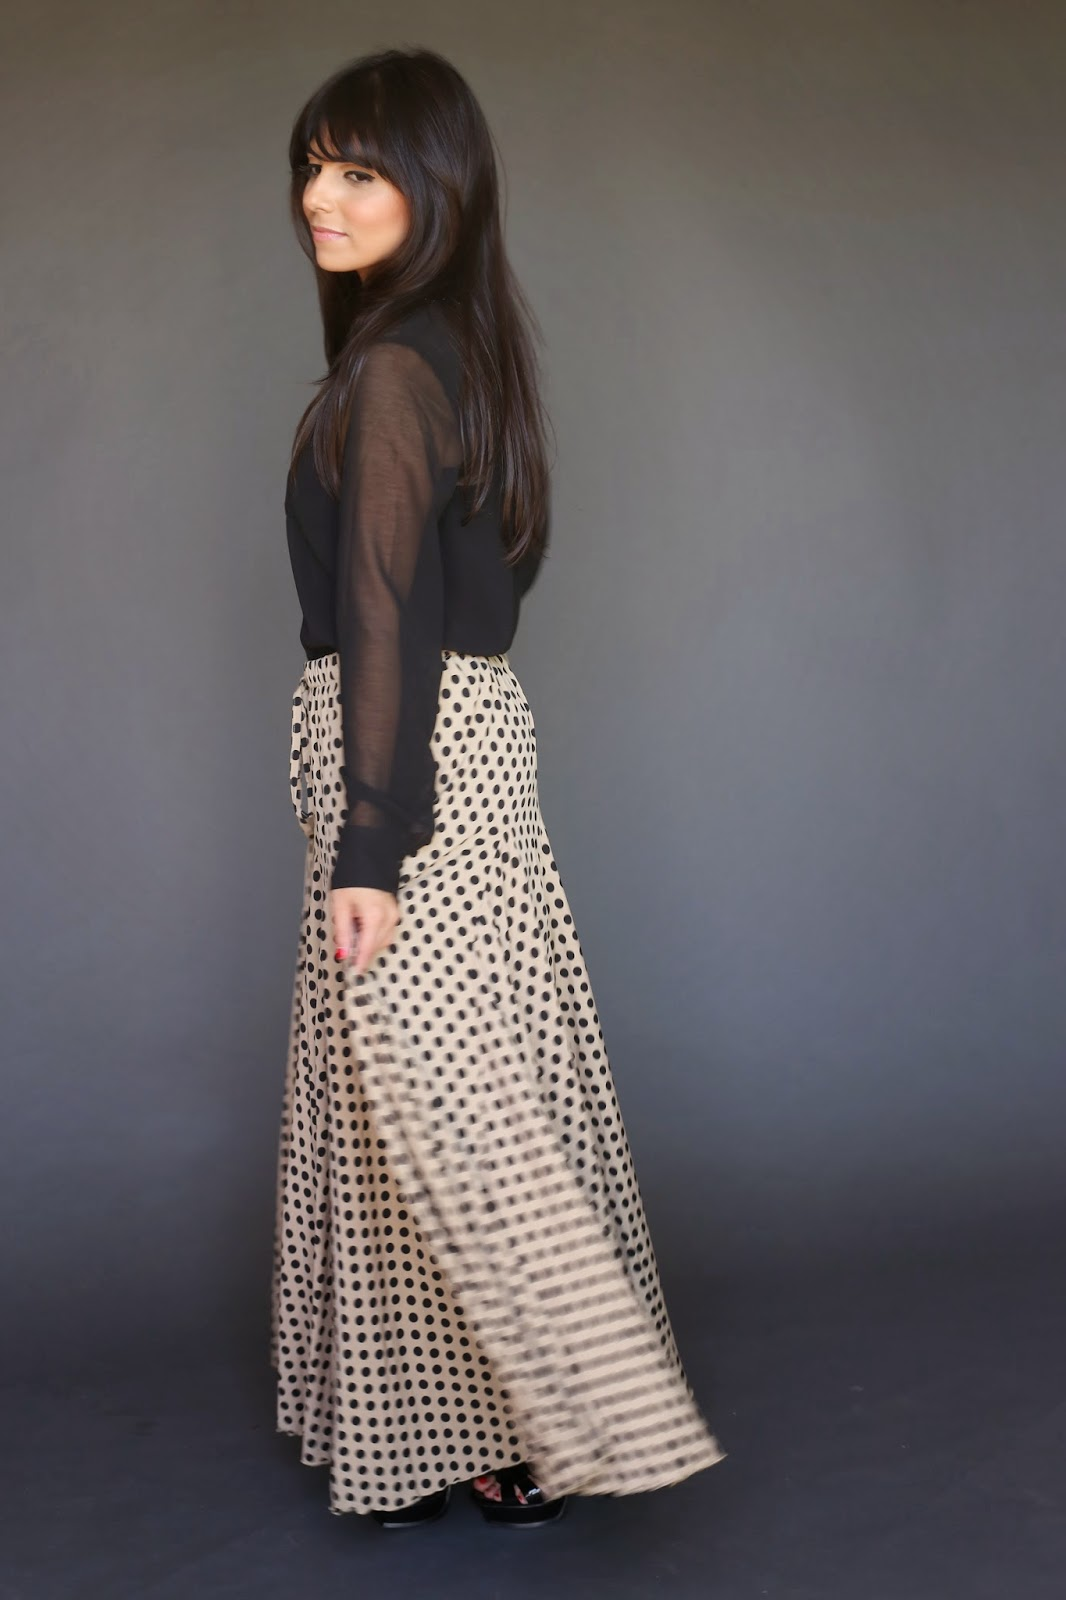 black polkadot modest maxi skirt on beige background no slits hijab tznius mormon lds fashion style Mode-sty